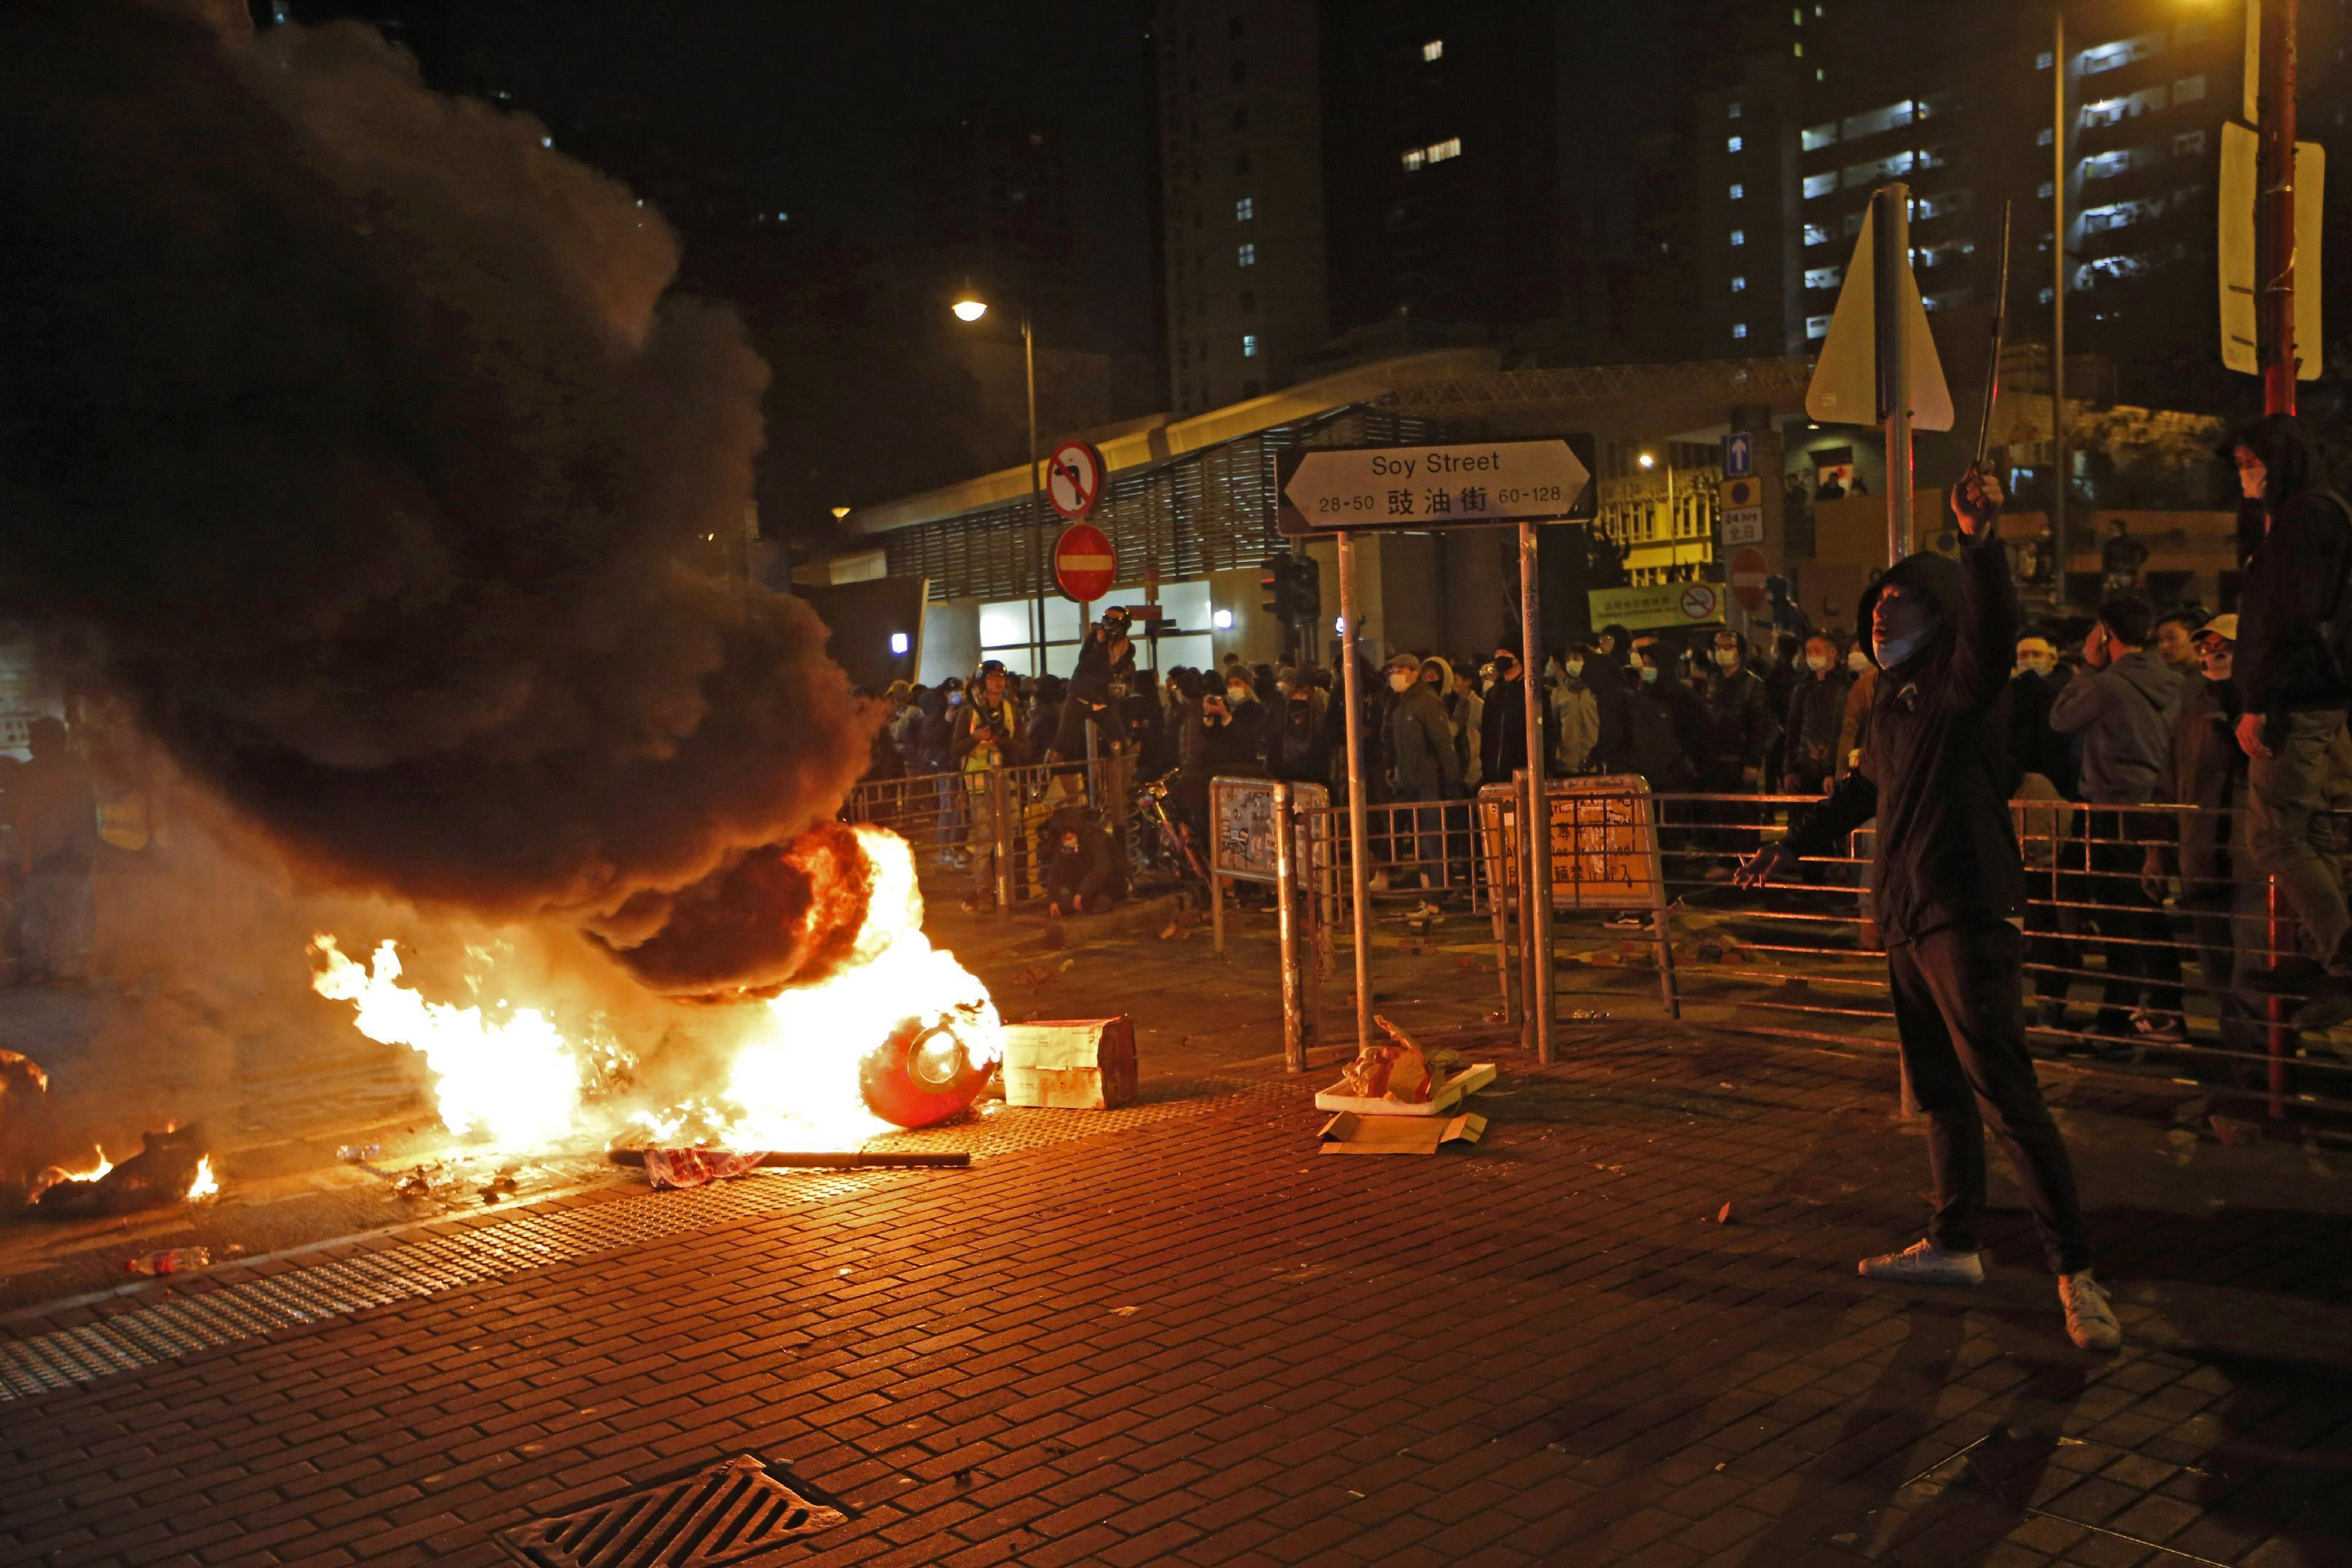 Hong Kong student held at airport after violent clashes